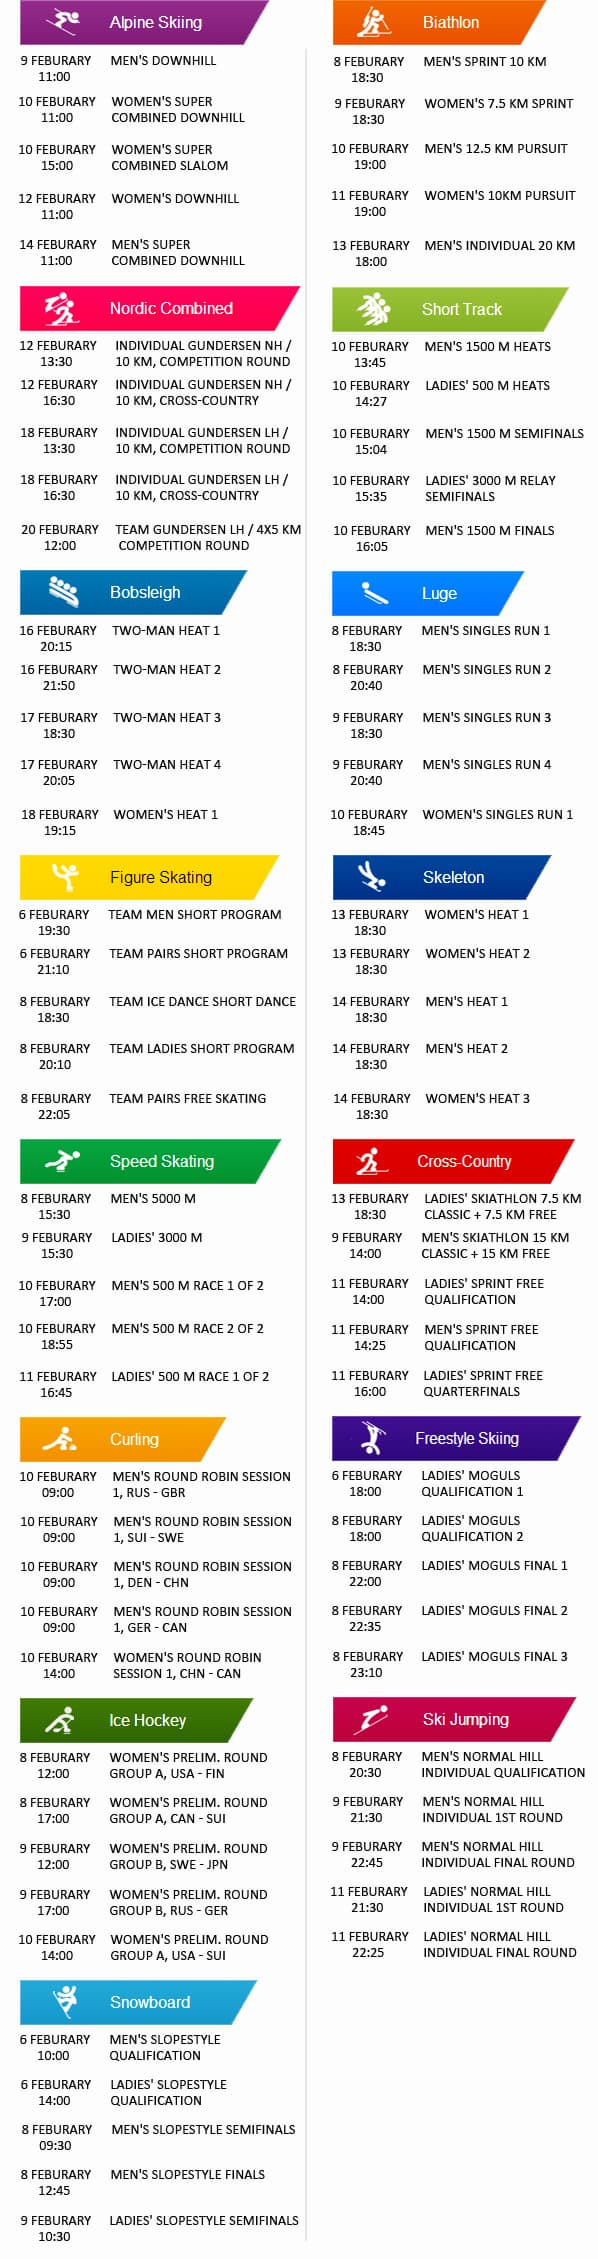 What Winter Games will we see in Sochi Olympics 2014? Sochi Olympics will give us 592 hours of full enjoyment of 98 events in 15 Winter sports. Games that we will be watching in Sochi Olympics 2014 are: